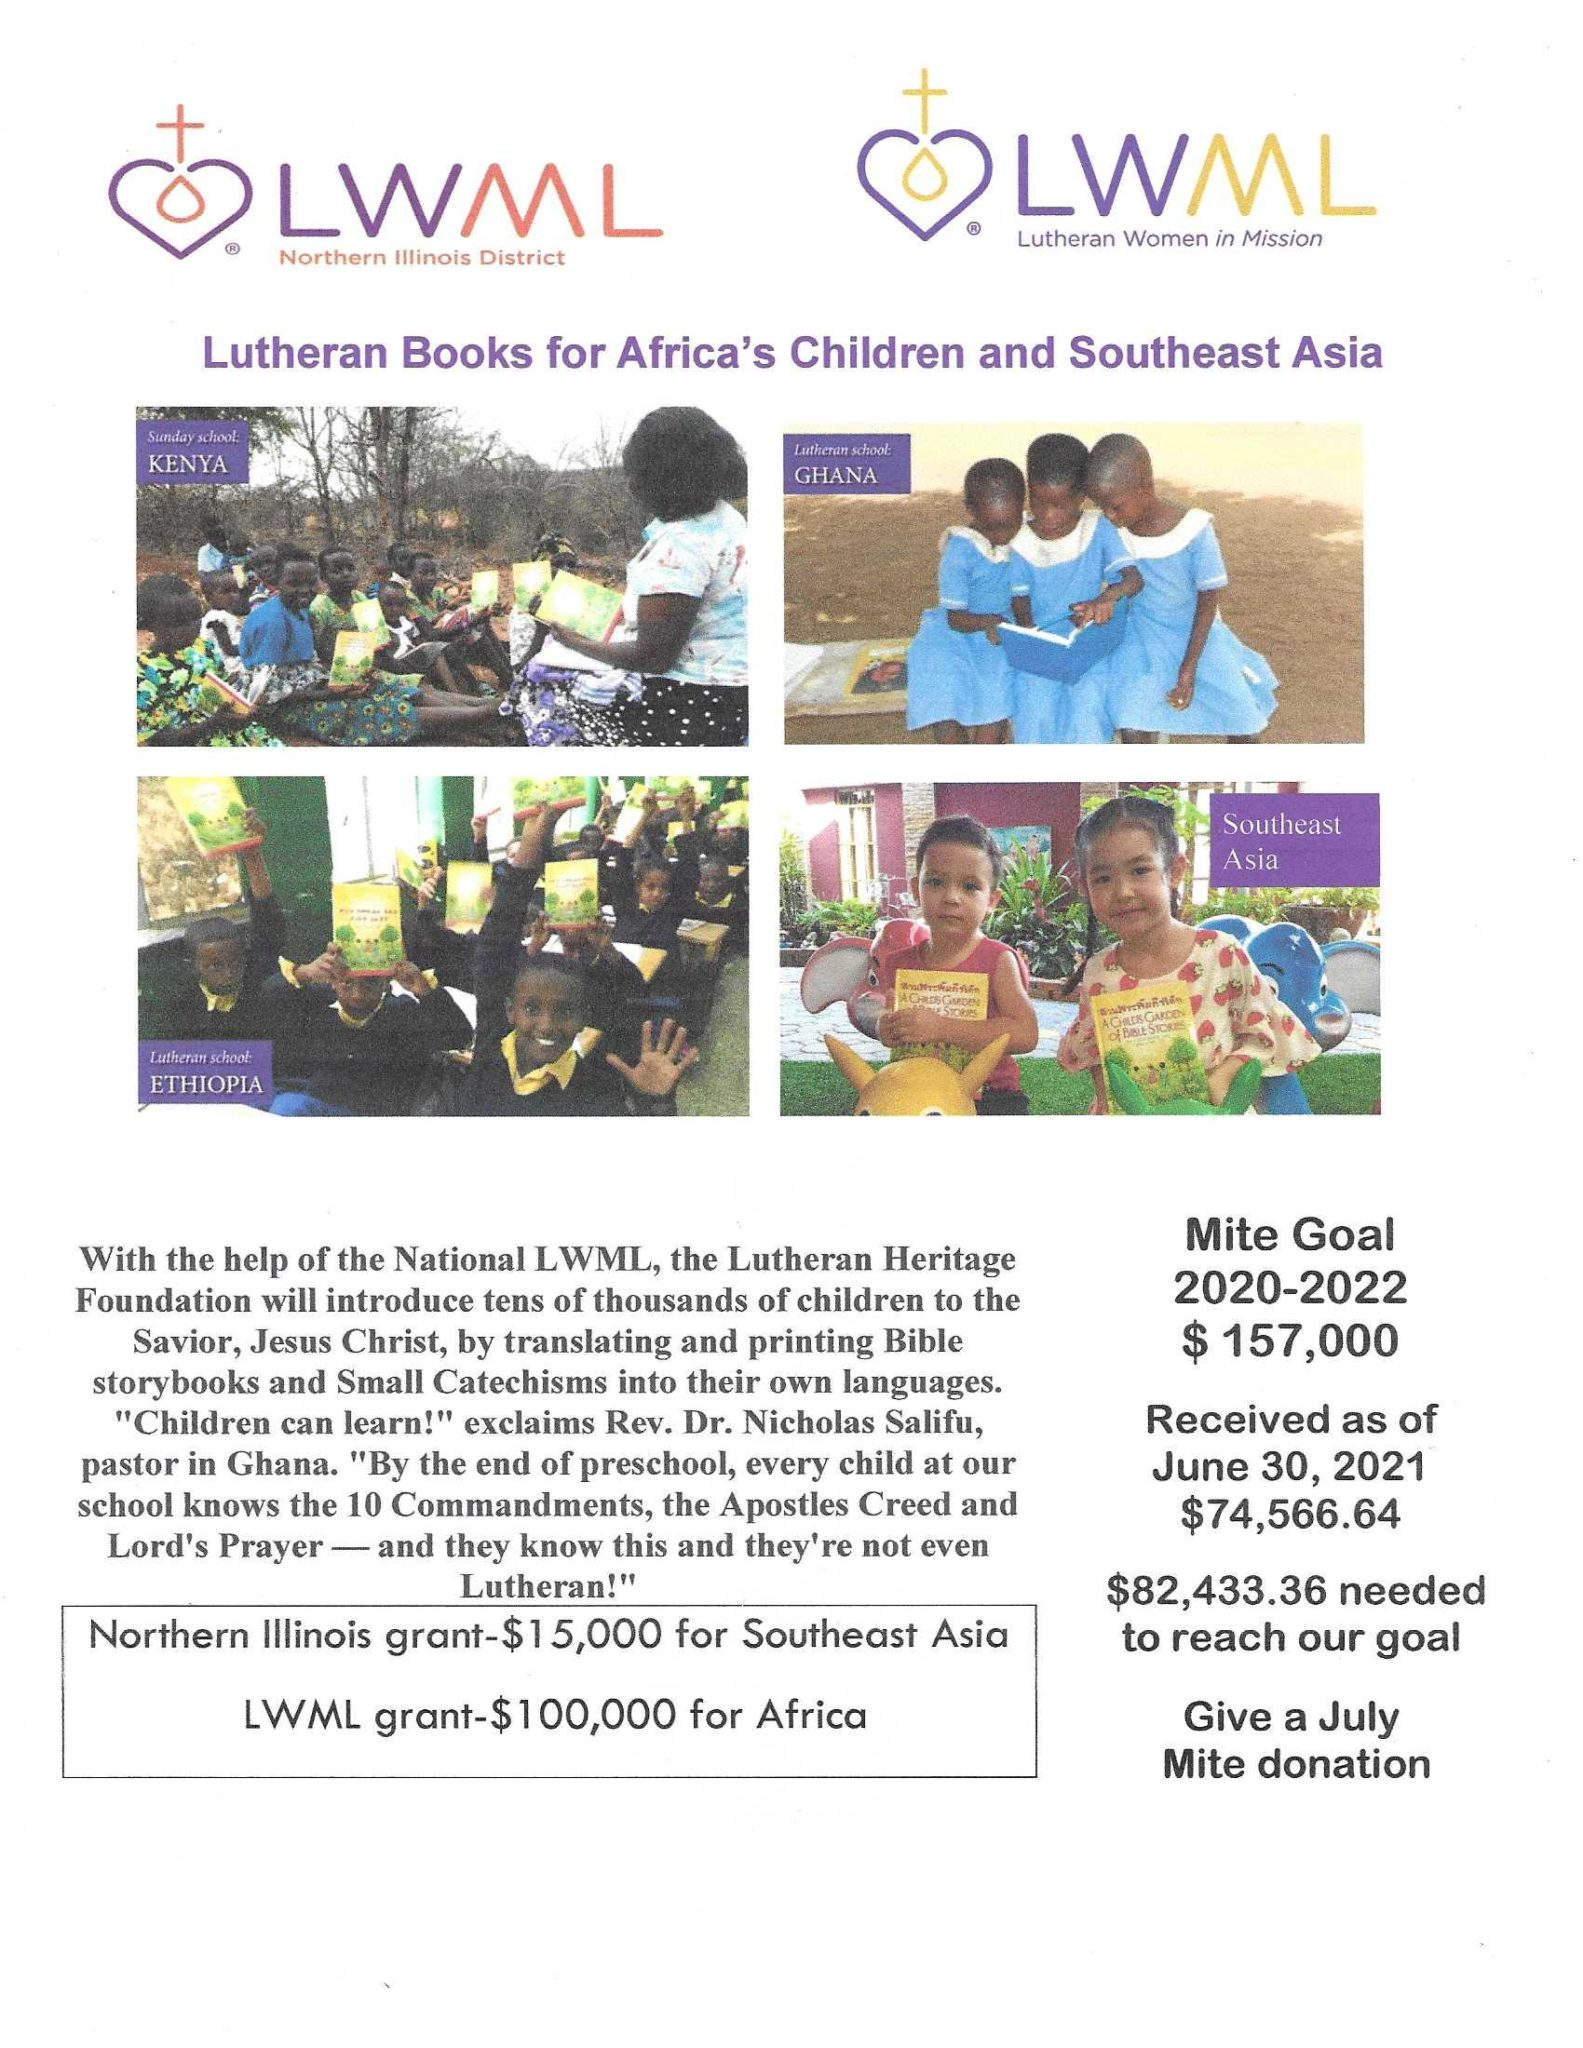 LWML NID mission grant poster for July 2021